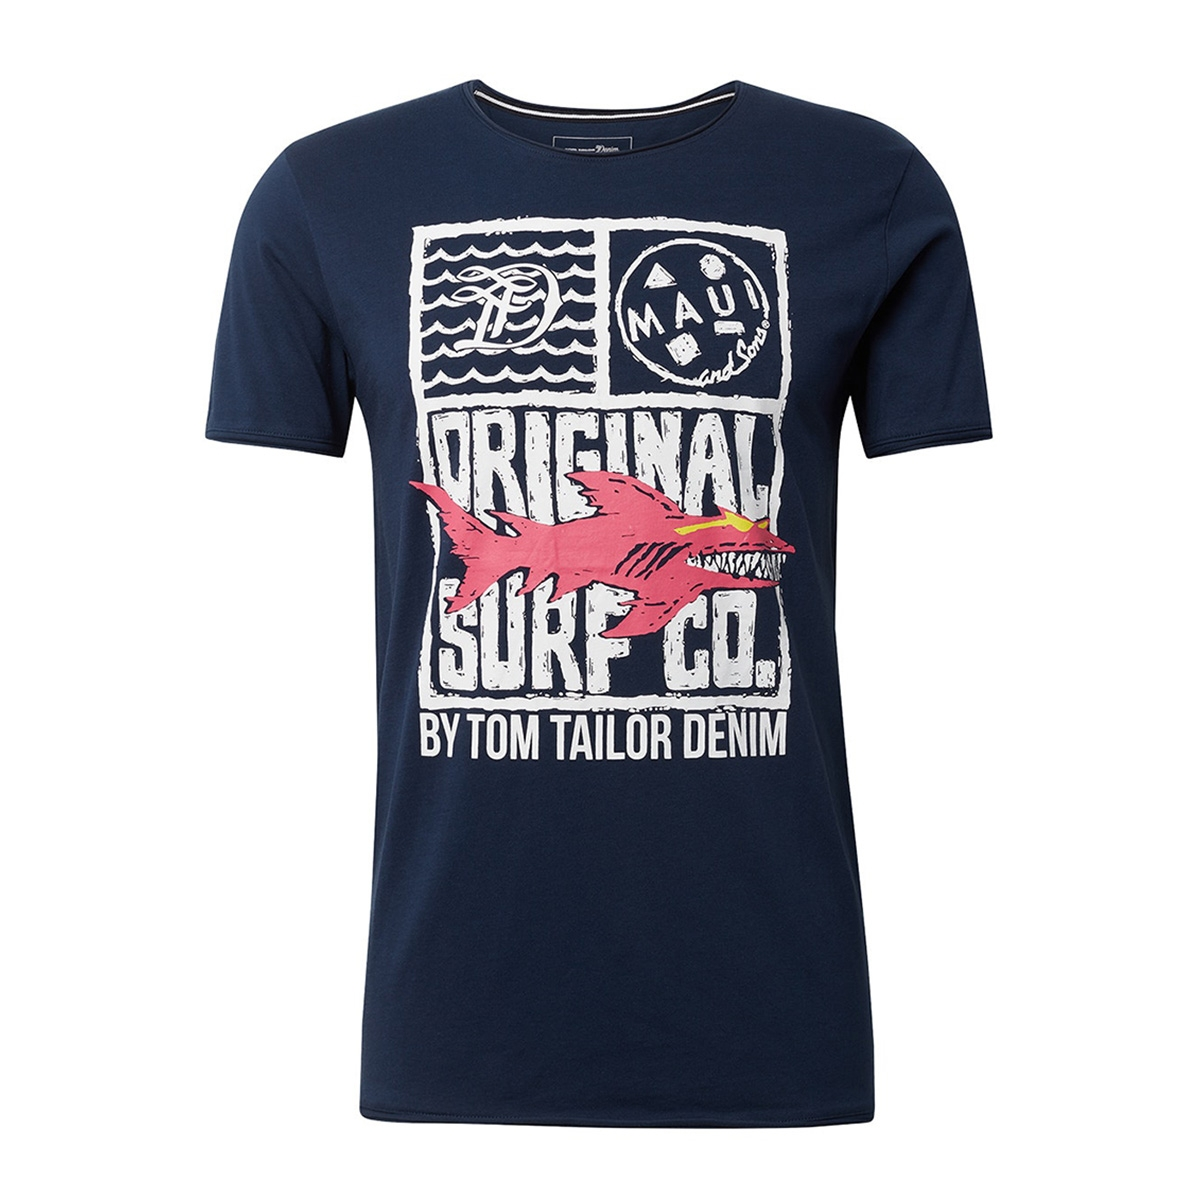 t shirt met print 1011384xx12 tom tailor t-shirt 10915